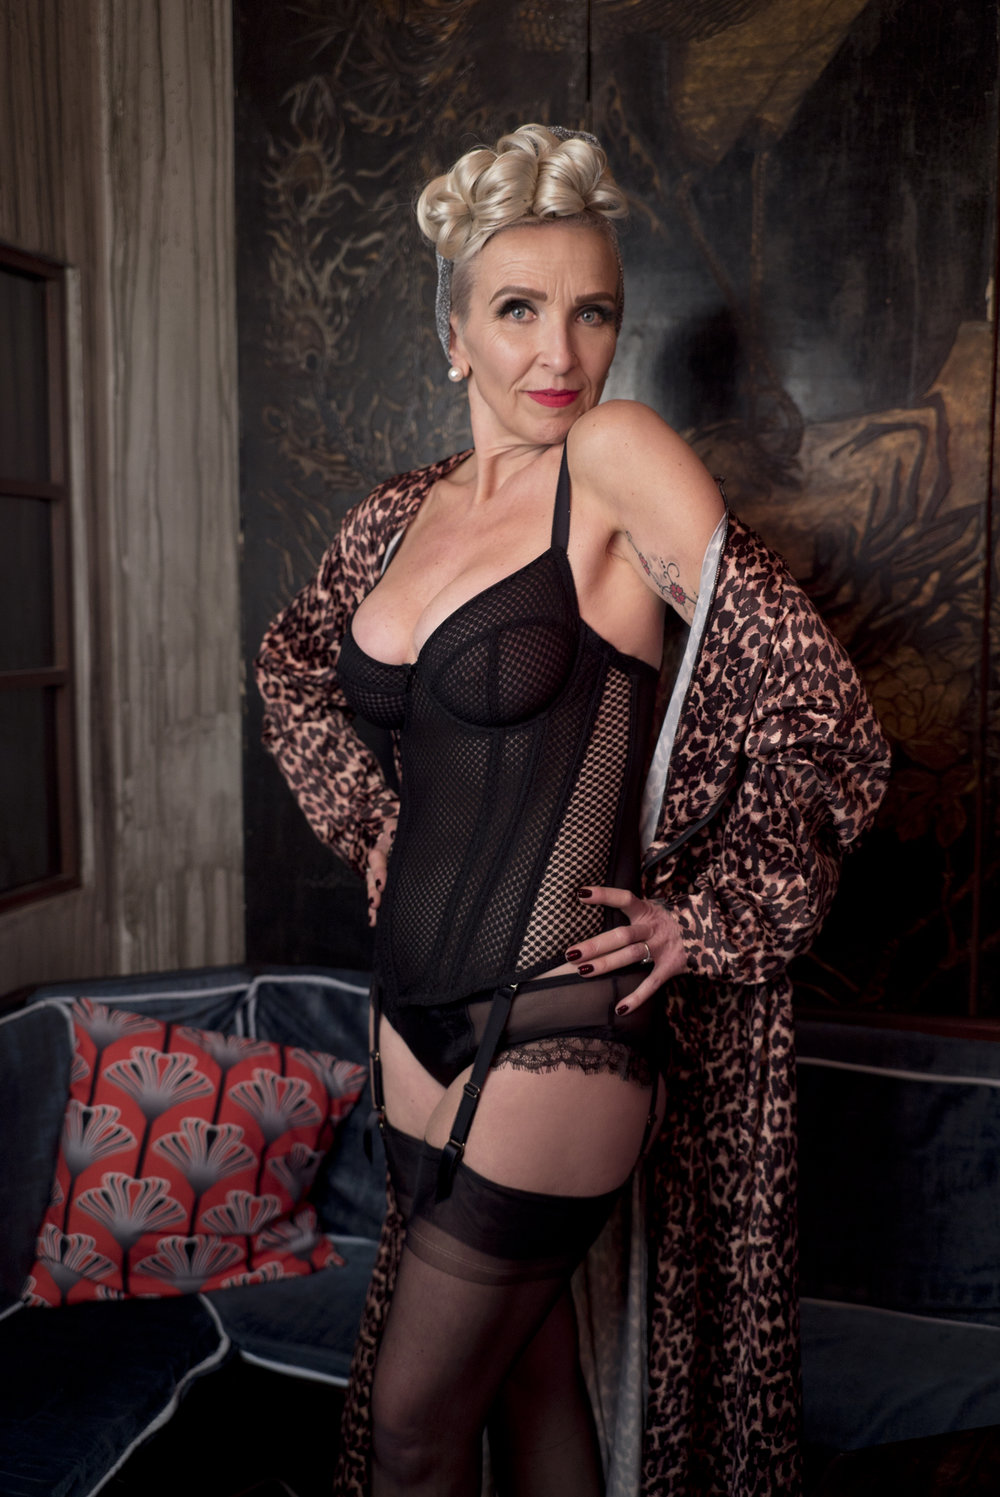 Karen wears the  Carlota Basque ,  Isadora Brief  and  Bettie Page Leopard Robe